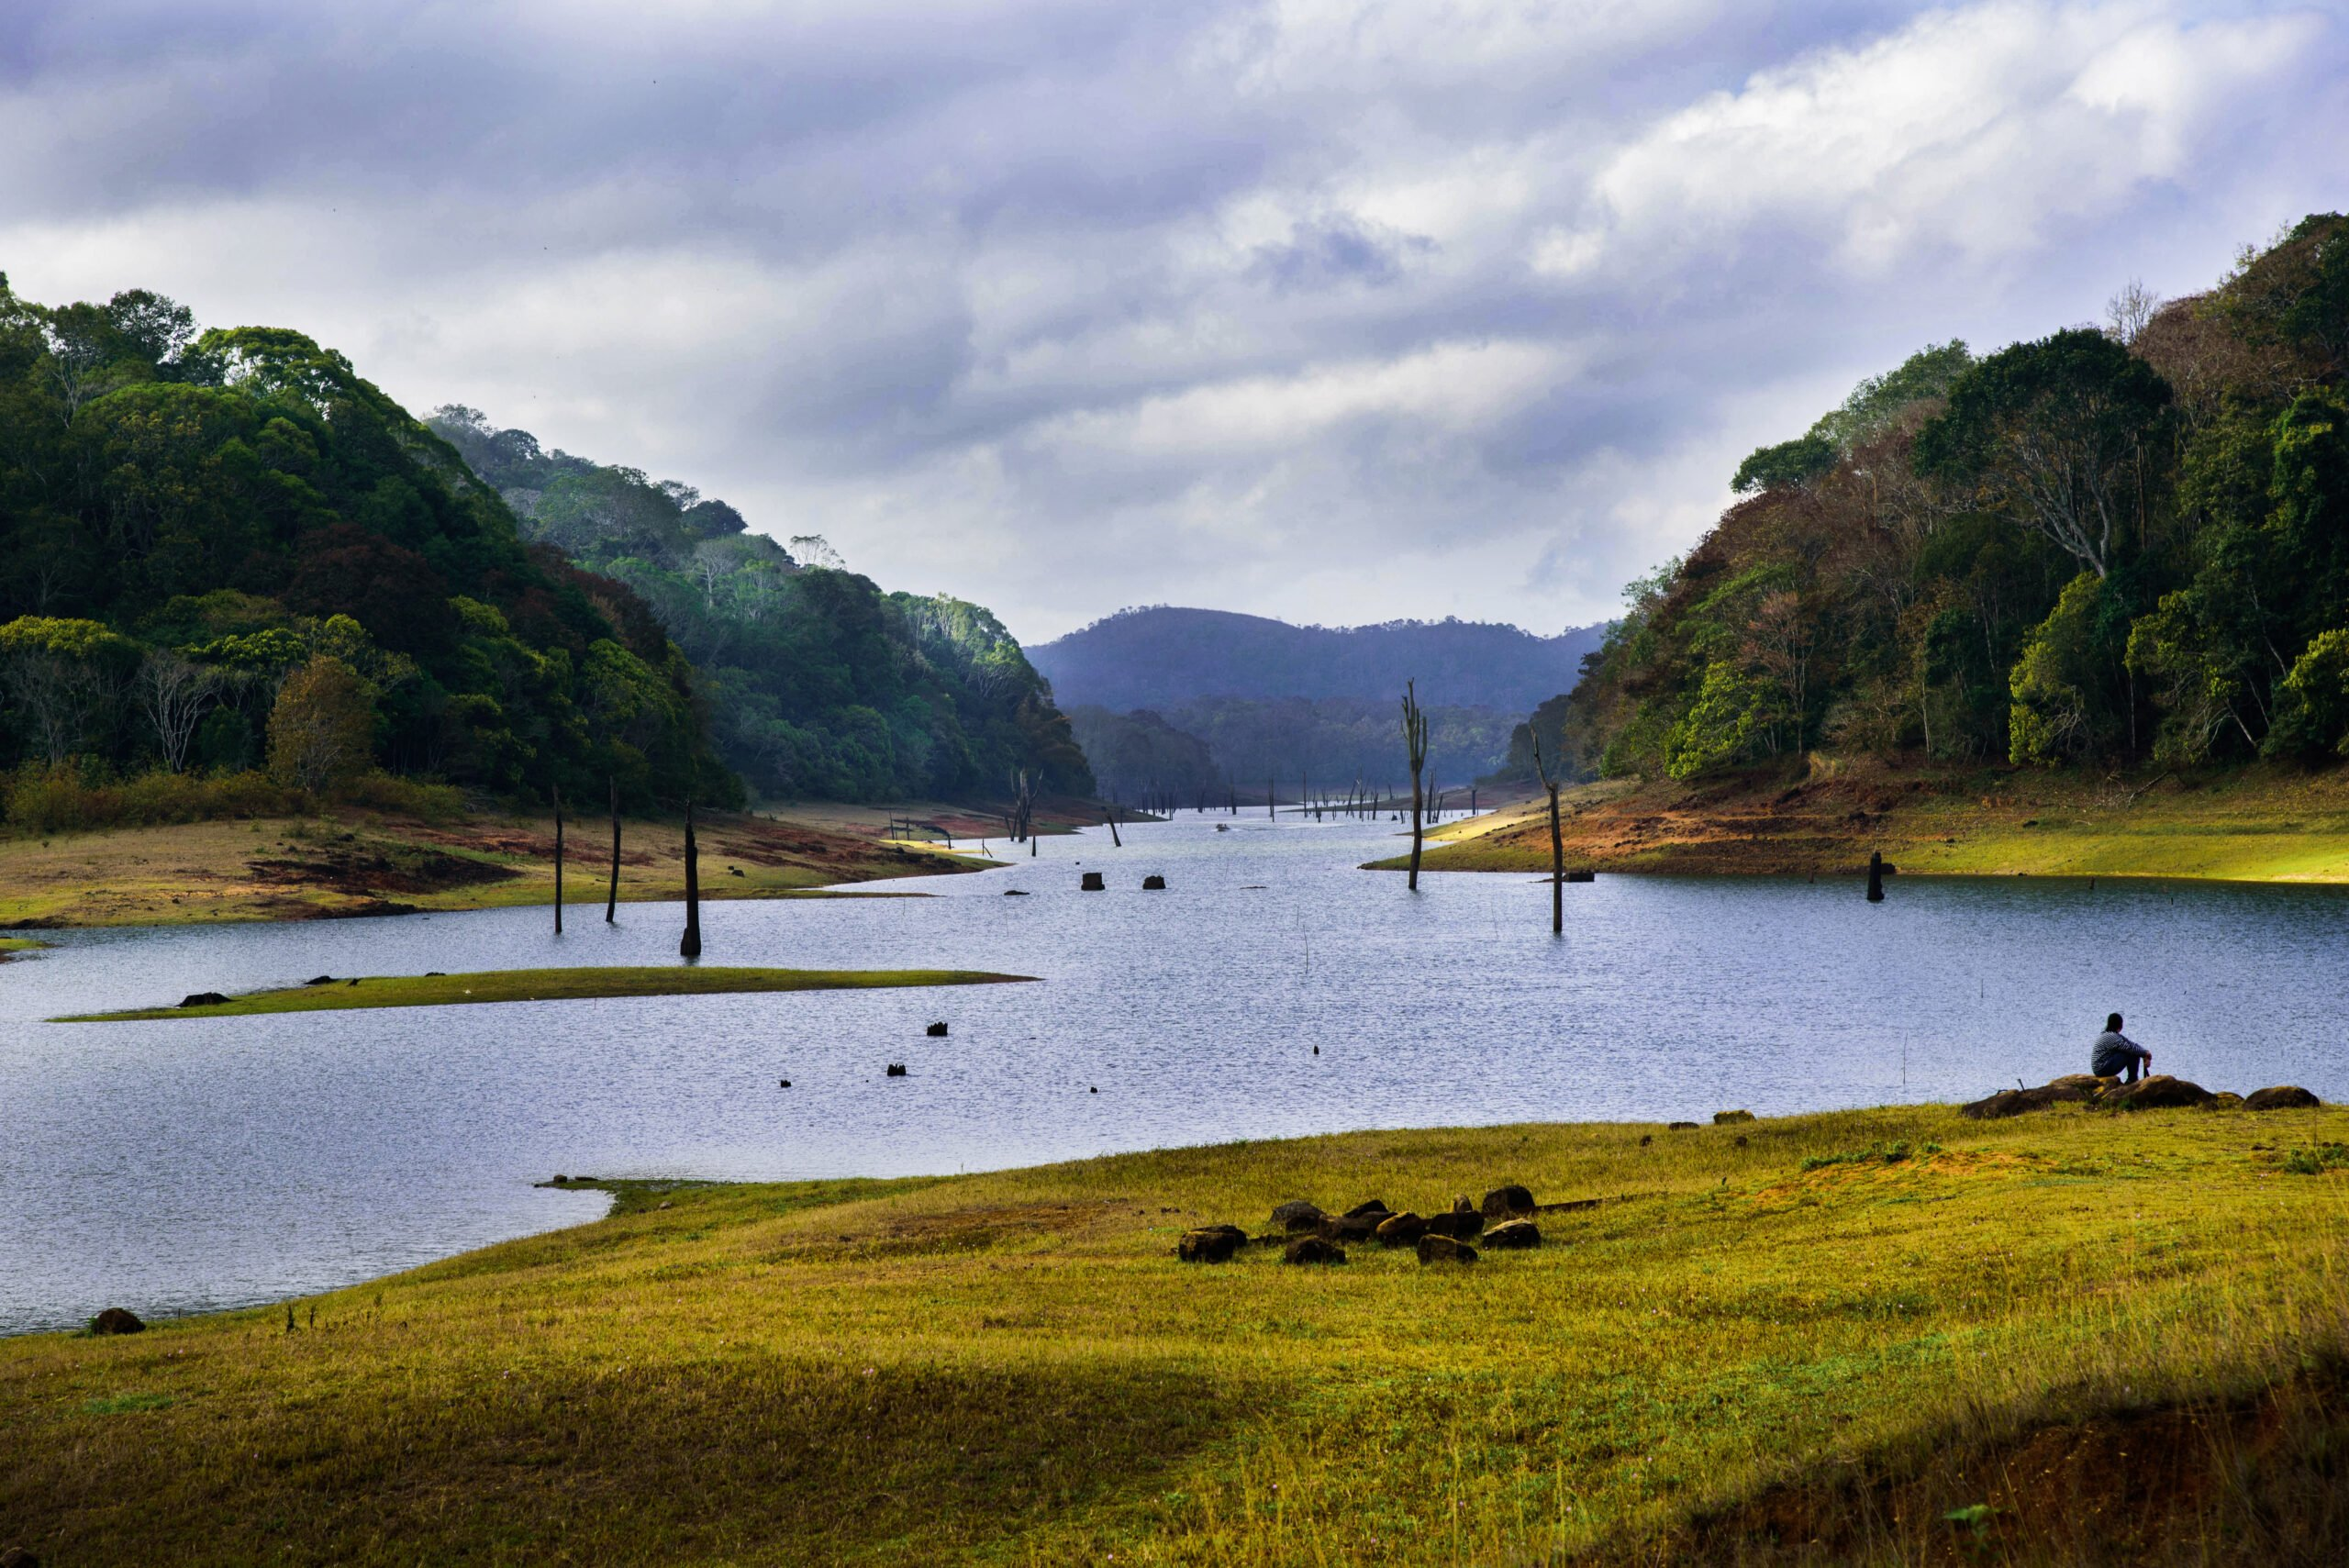 Amazing Southern India Views In Our 3 Day Wildlife And Culture Tour Of Thekkady From Kochi